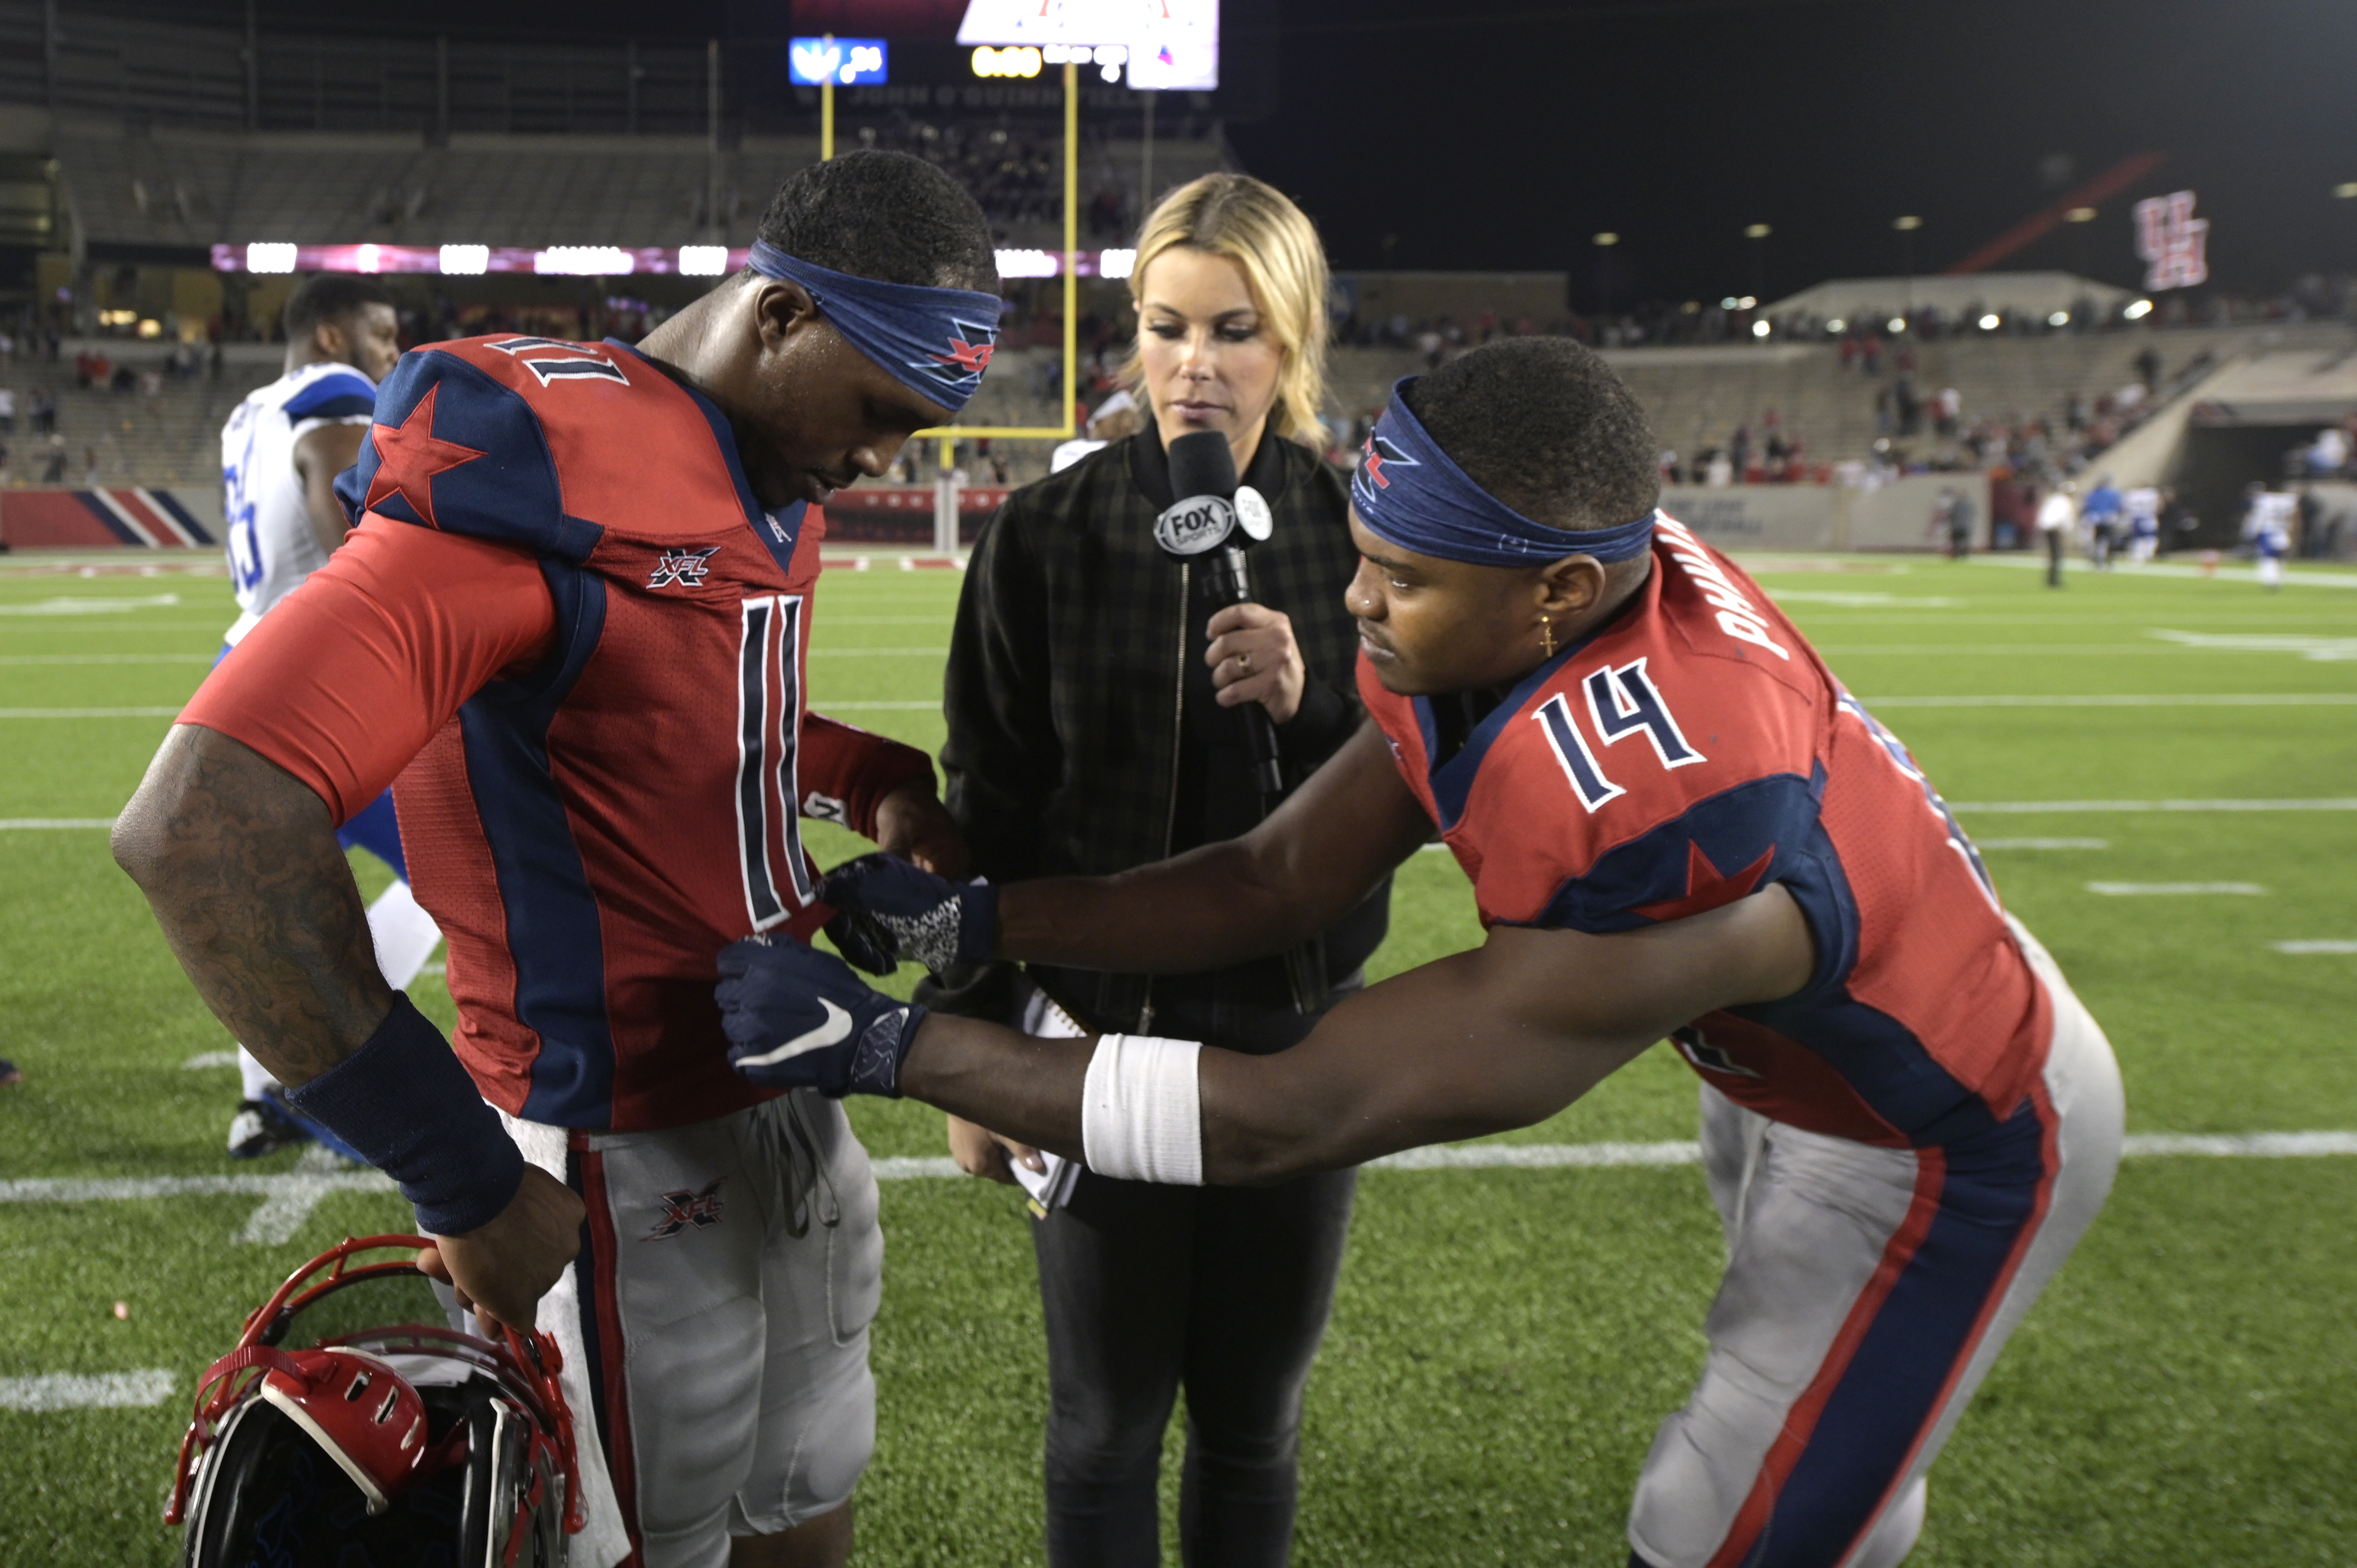 P.J. Walker and Cam Phillips of the Houston Roughnecks are interviewed after the game against the St. Louis BattleHawks at TDECU Stadium on February 16, 2020 in Houston, Texas.